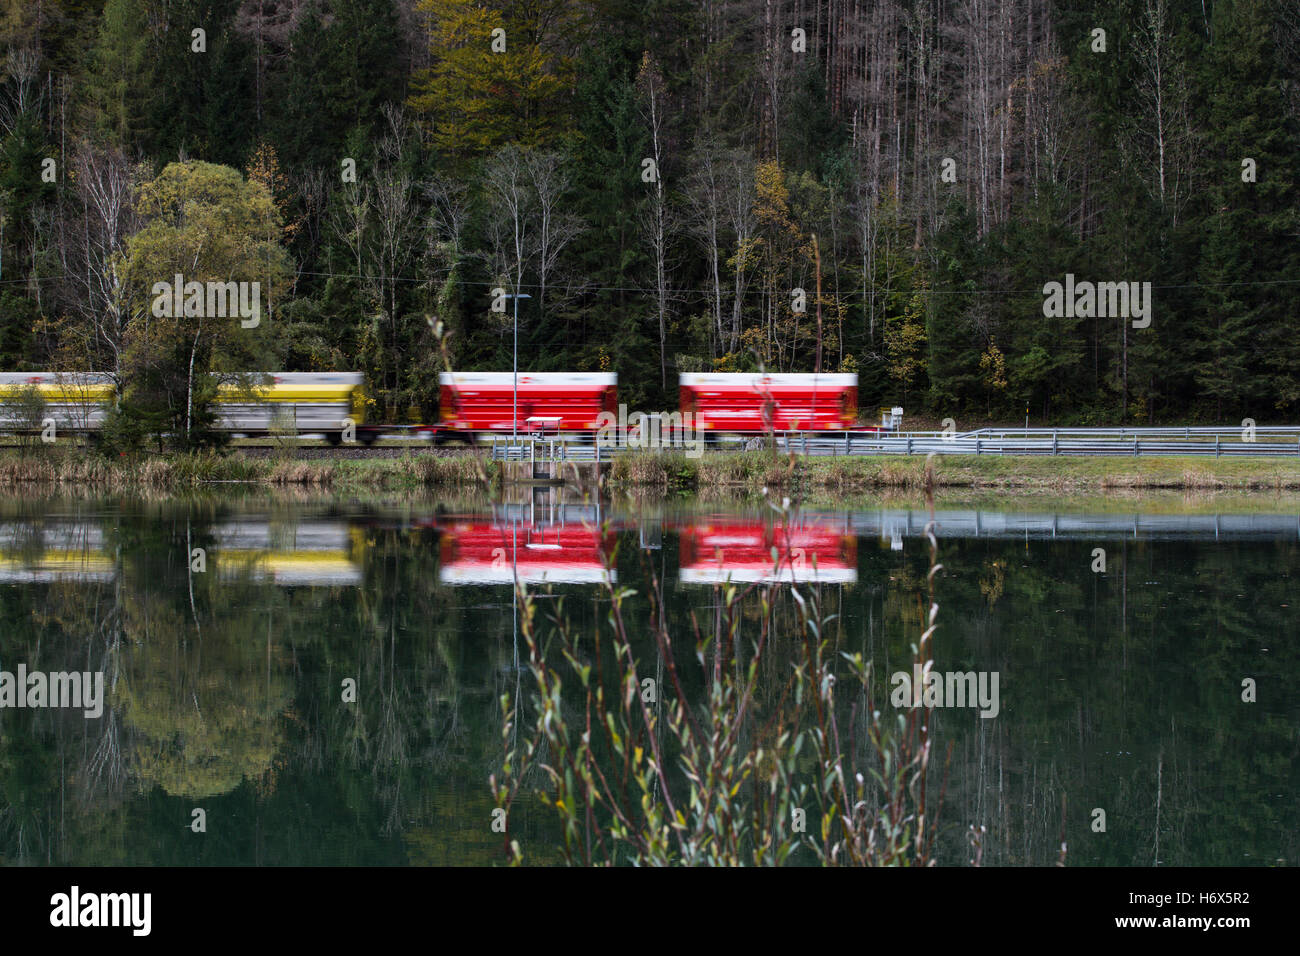 Driving Train in the Nationalpark Gesäuse, Styria, Austria - Stock Image